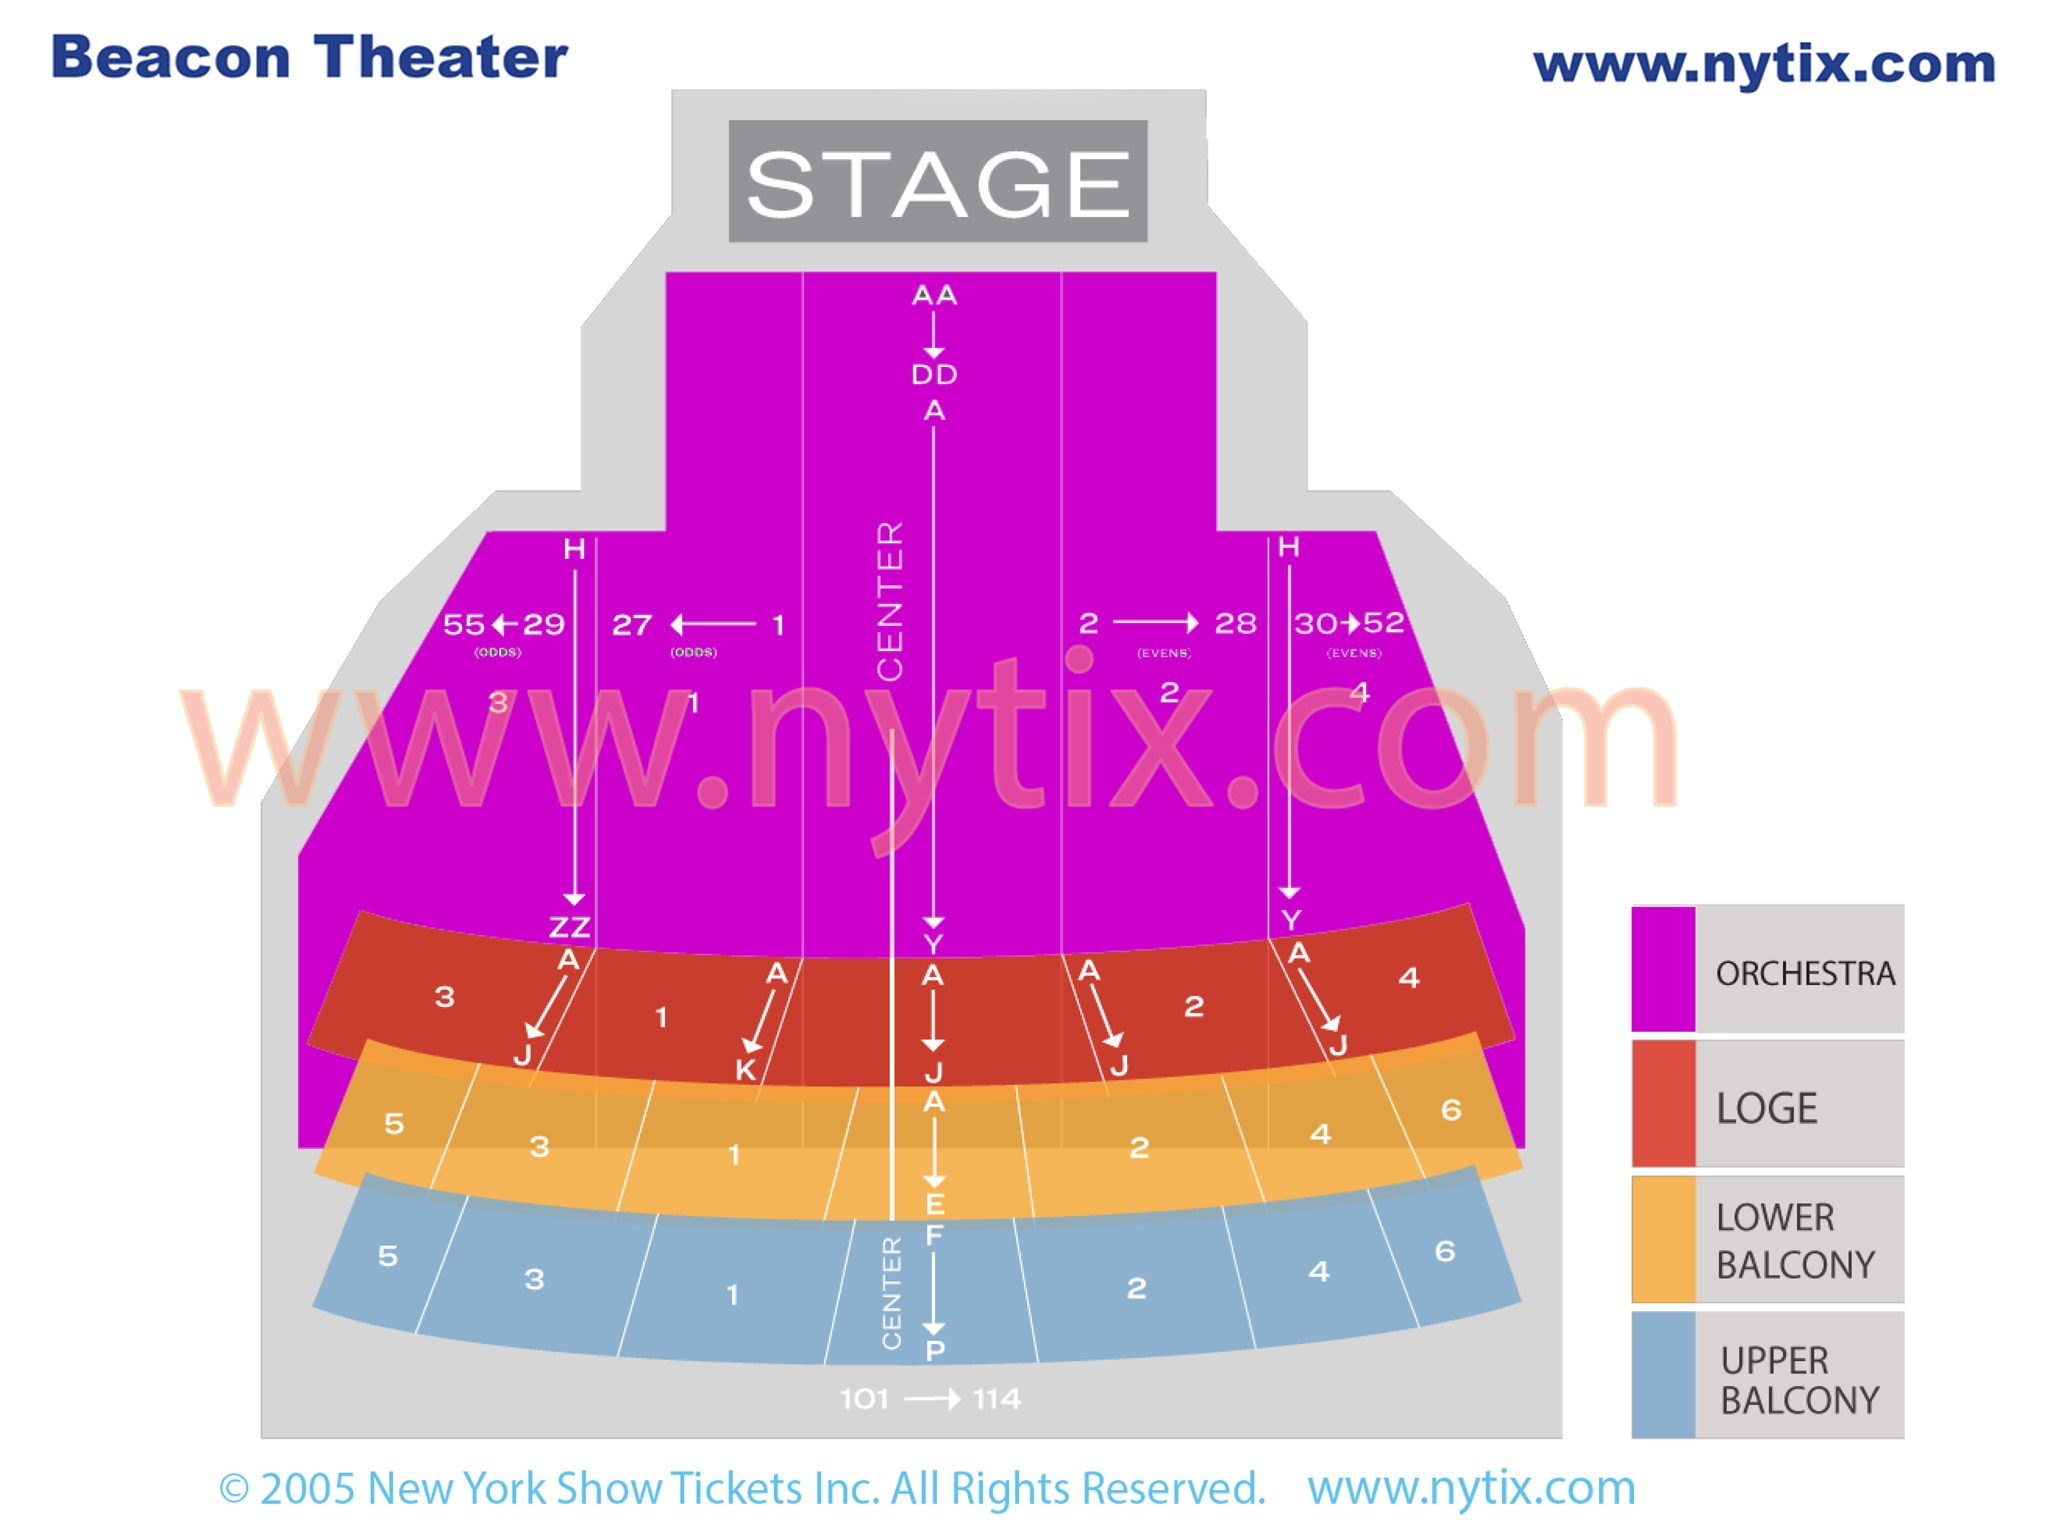 Beacon Broadway Theatre Seating Chart